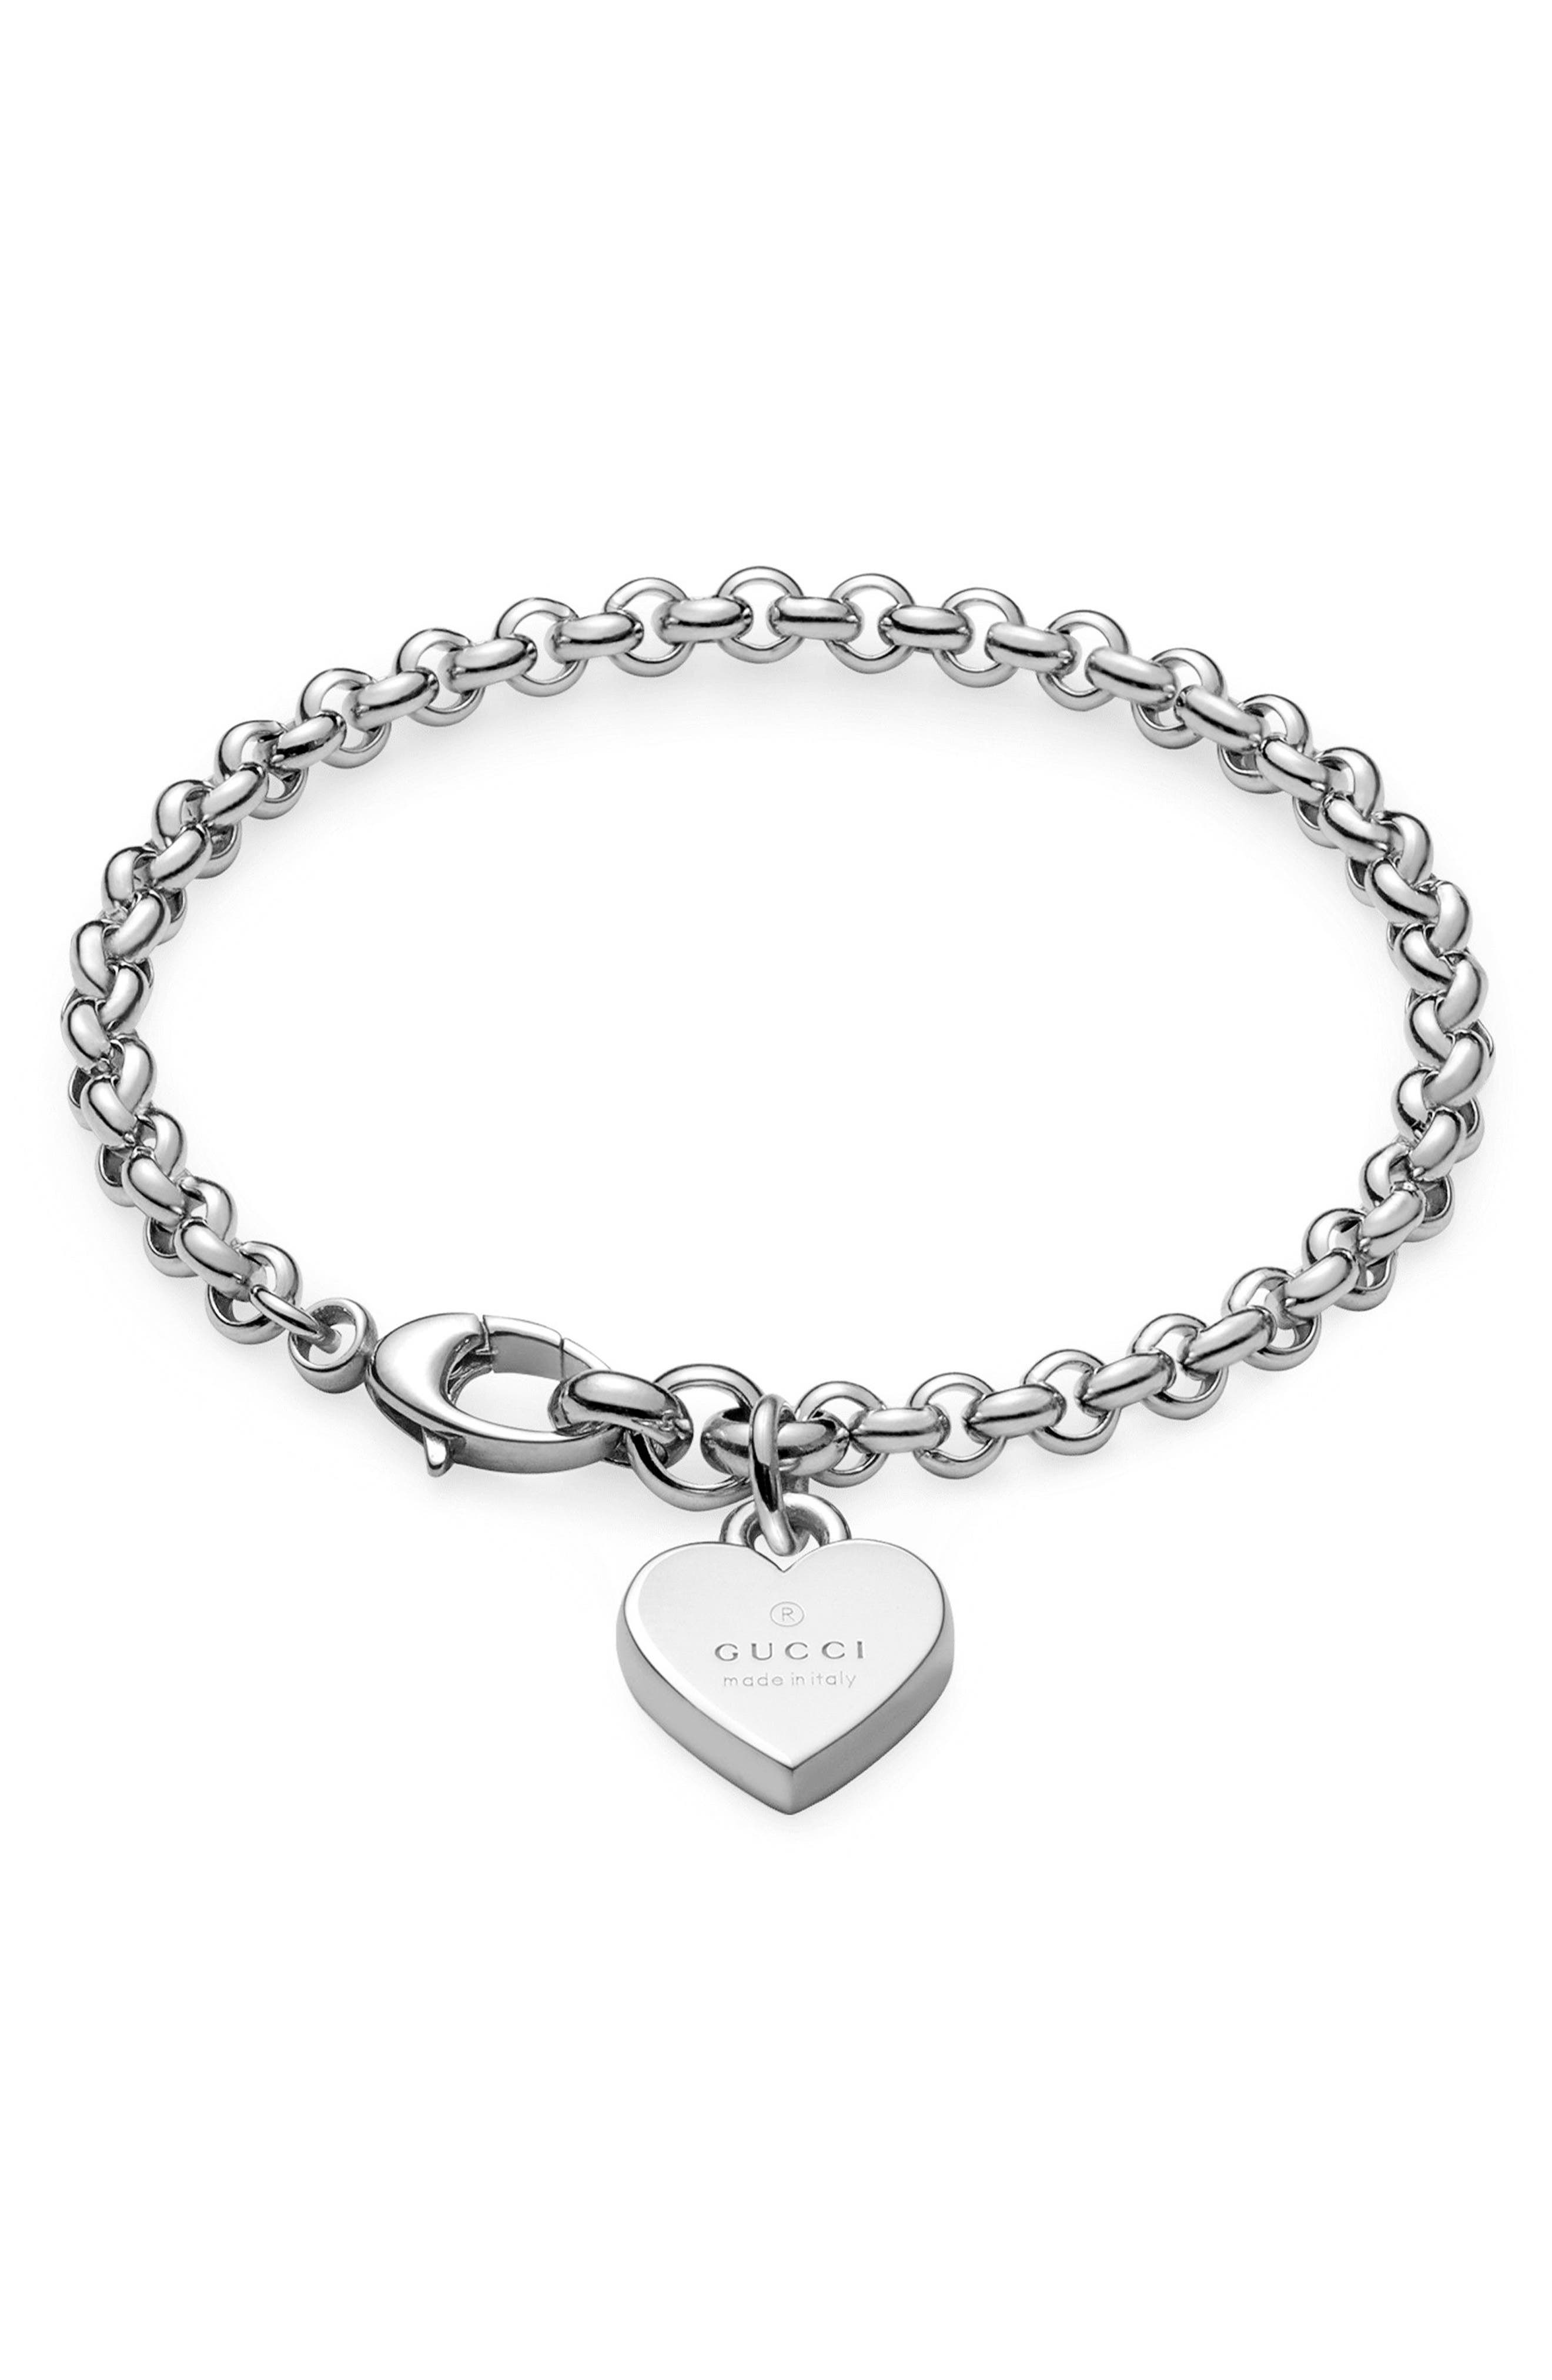 Silver Heart Charm Bracelet,                             Main thumbnail 1, color,                             040